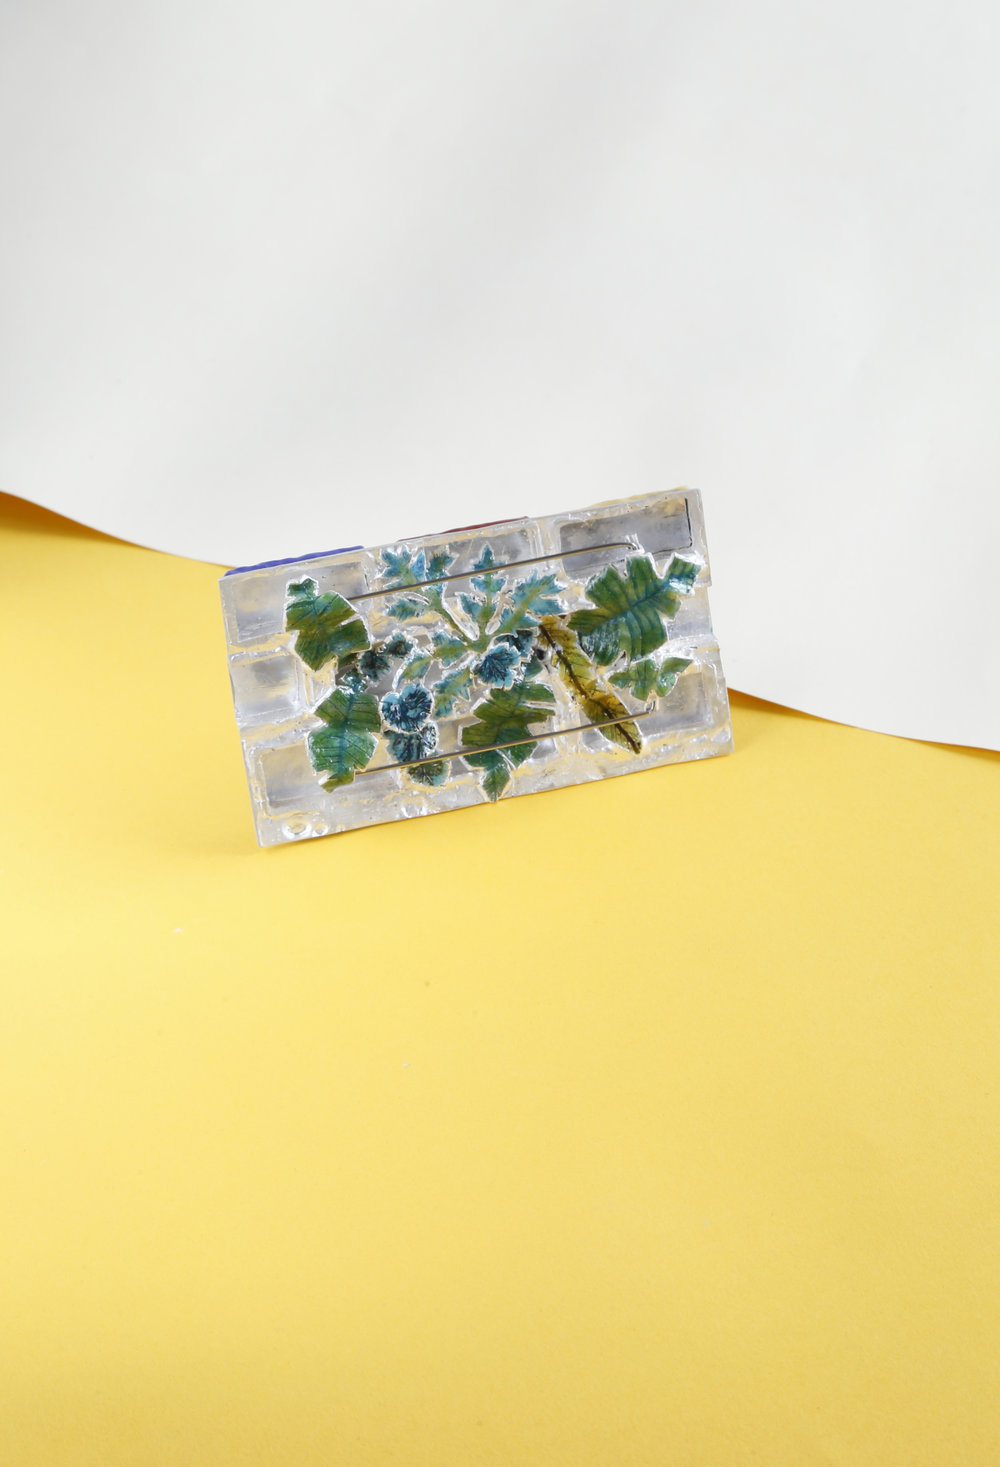 The back of the Brick brooch is your secret garden.